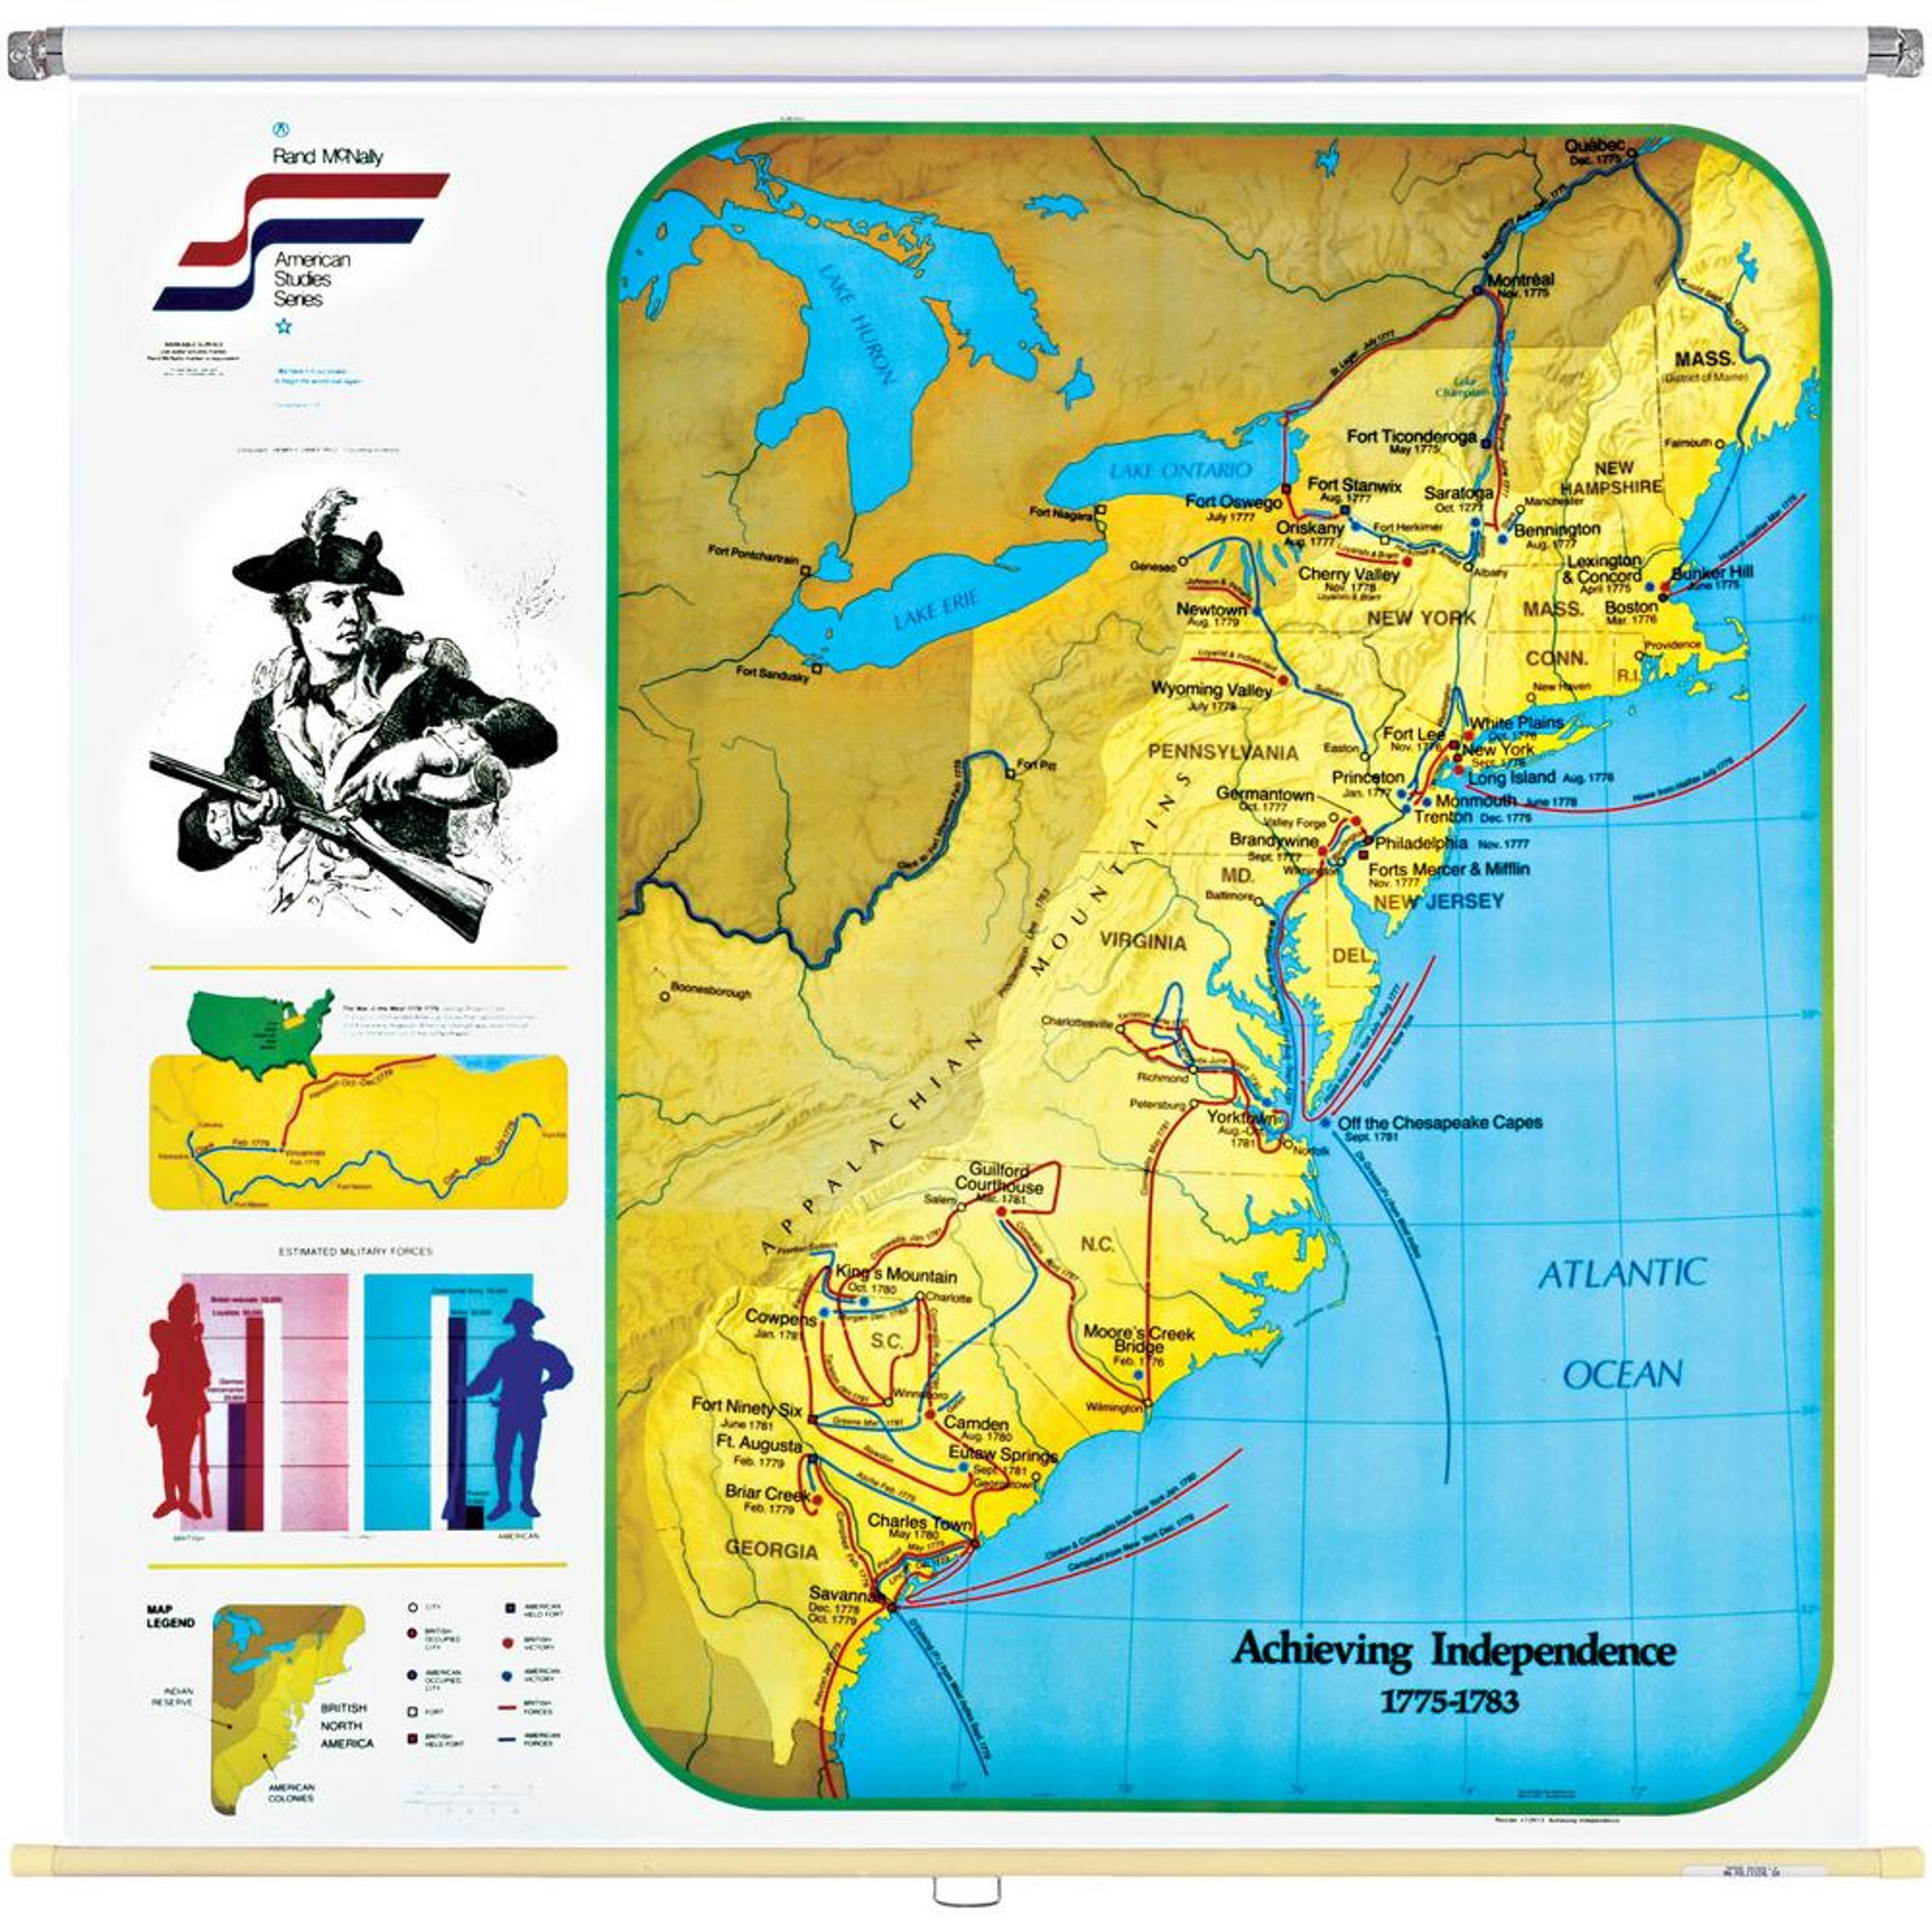 Achieving Independence Wall Map (1775-1783 Eastern United States)